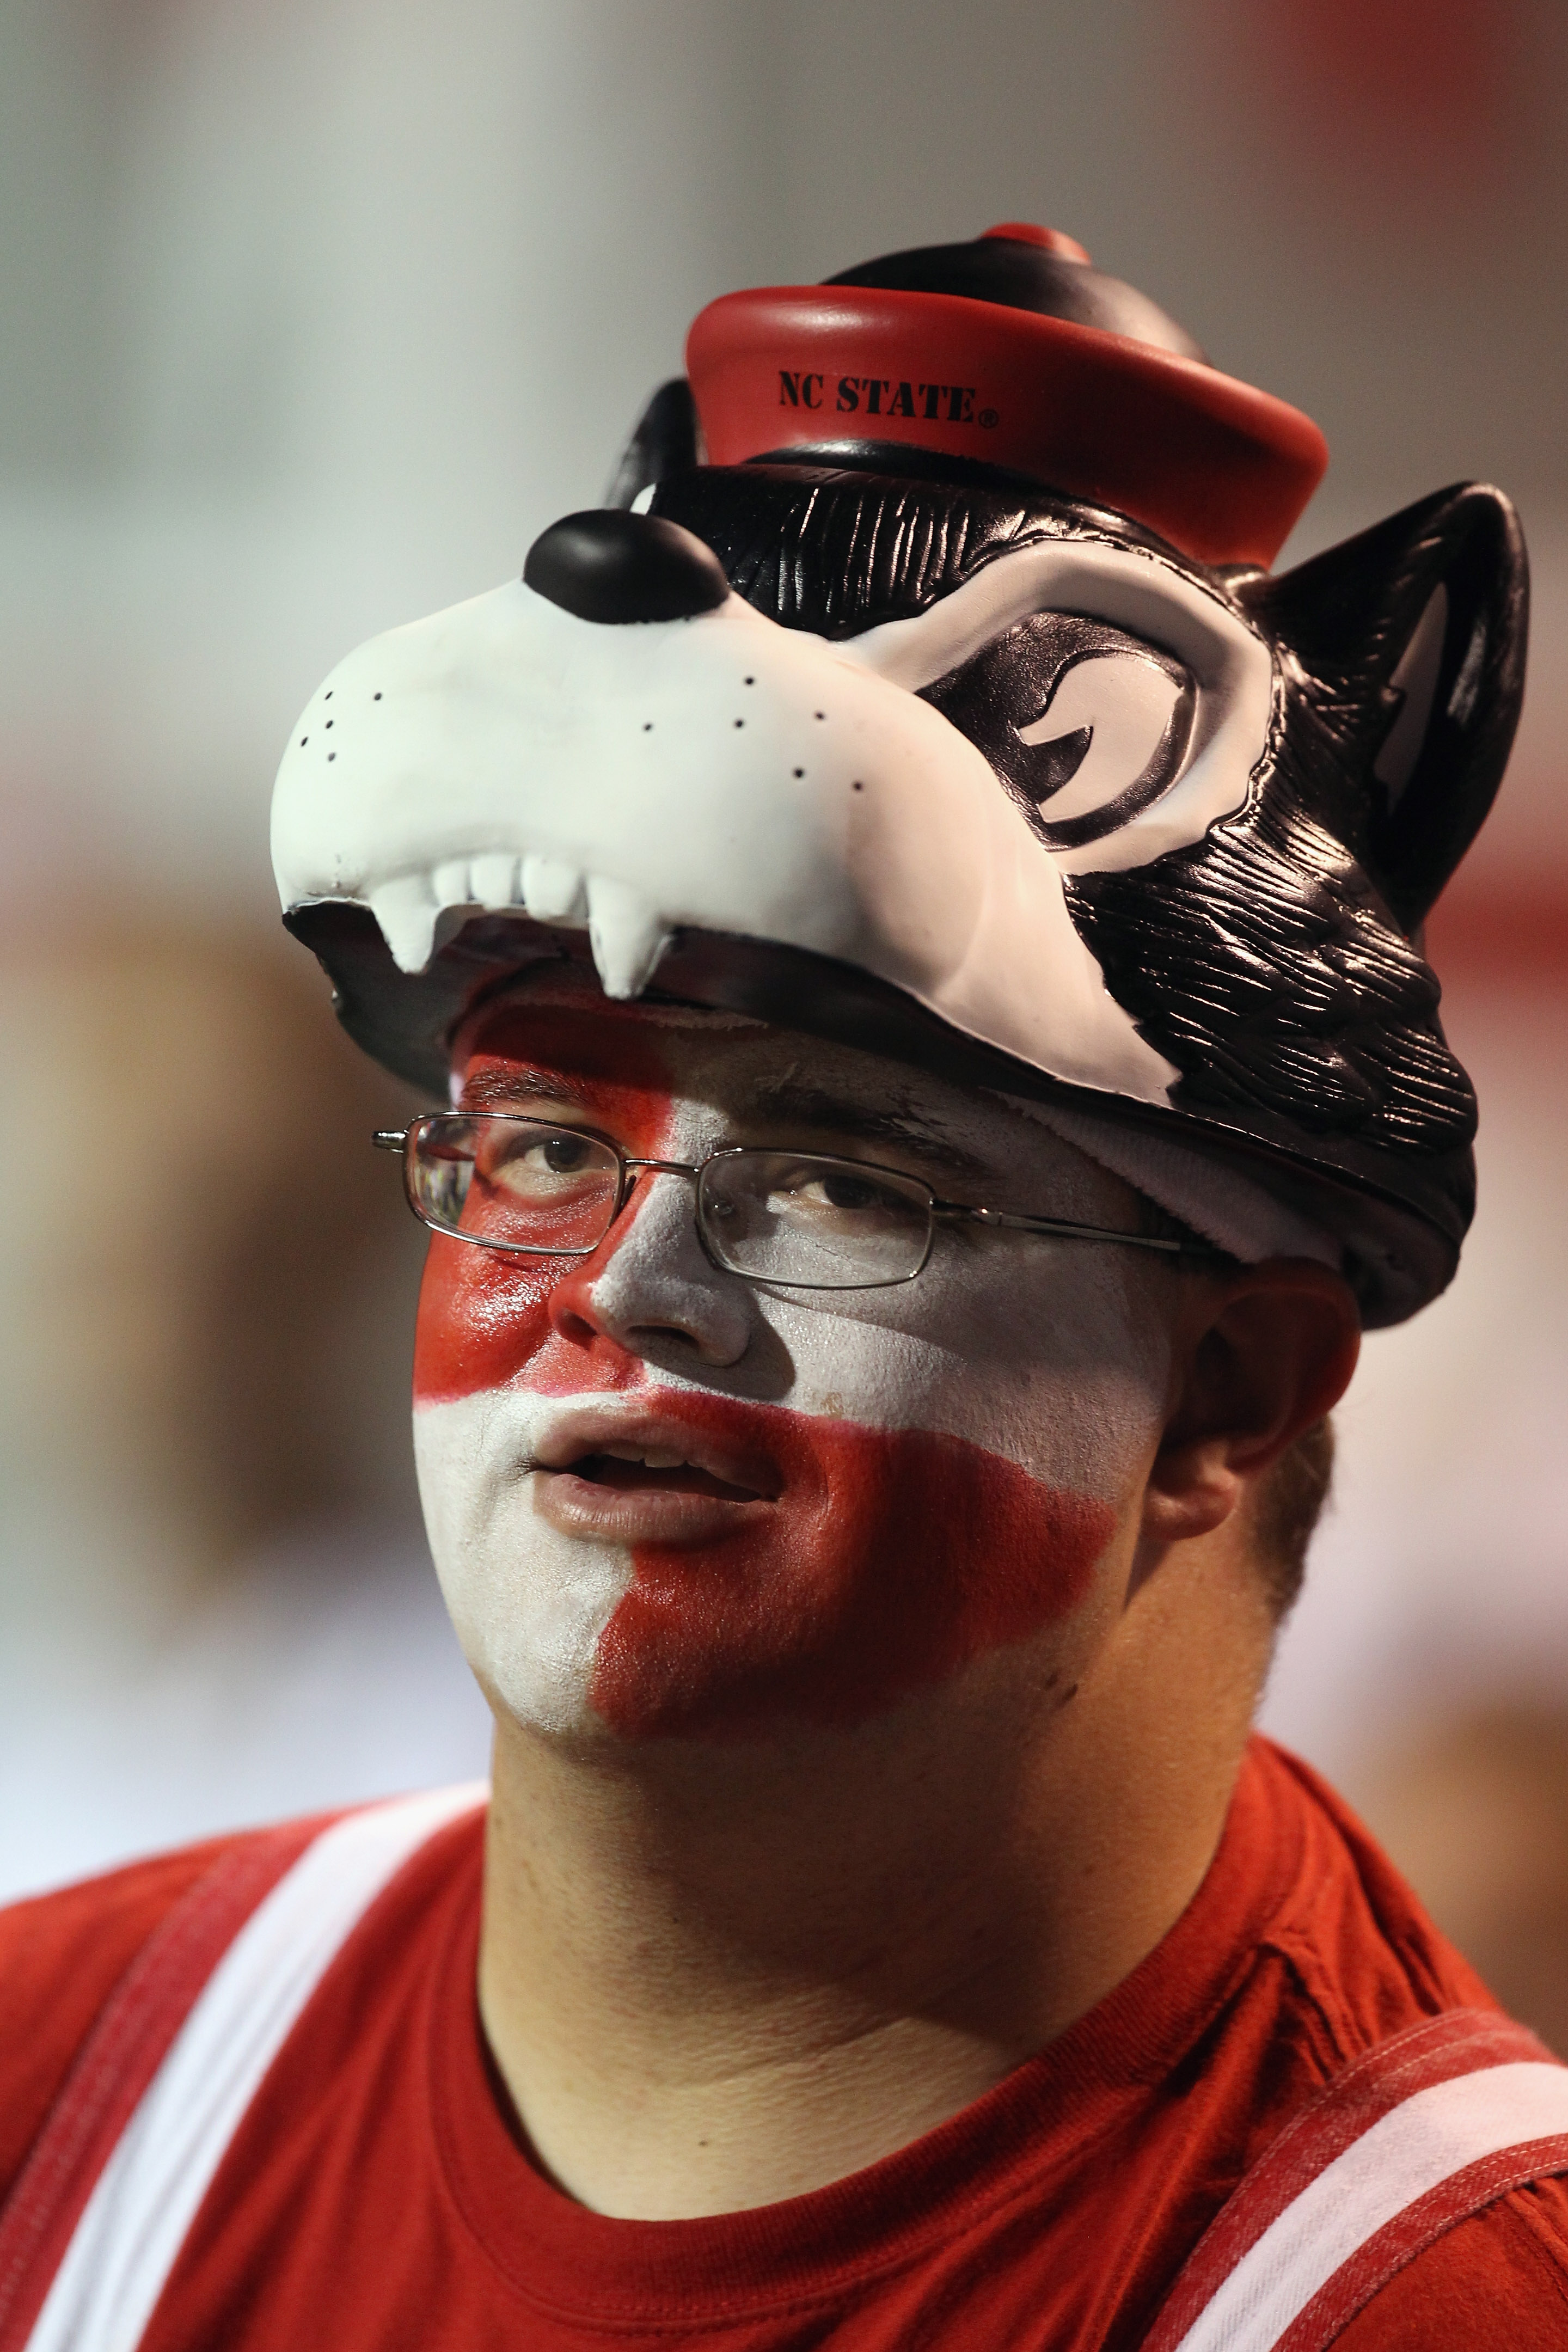 RALEIGH, NC - OCTOBER 28:  A fan of the North Carolina State Wolfpack watches on against the Florida State Seminoles during their game at Carter-Finley Stadium on October 28, 2010 in Raleigh, North Carolina.  (Photo by Streeter Lecka/Getty Images)